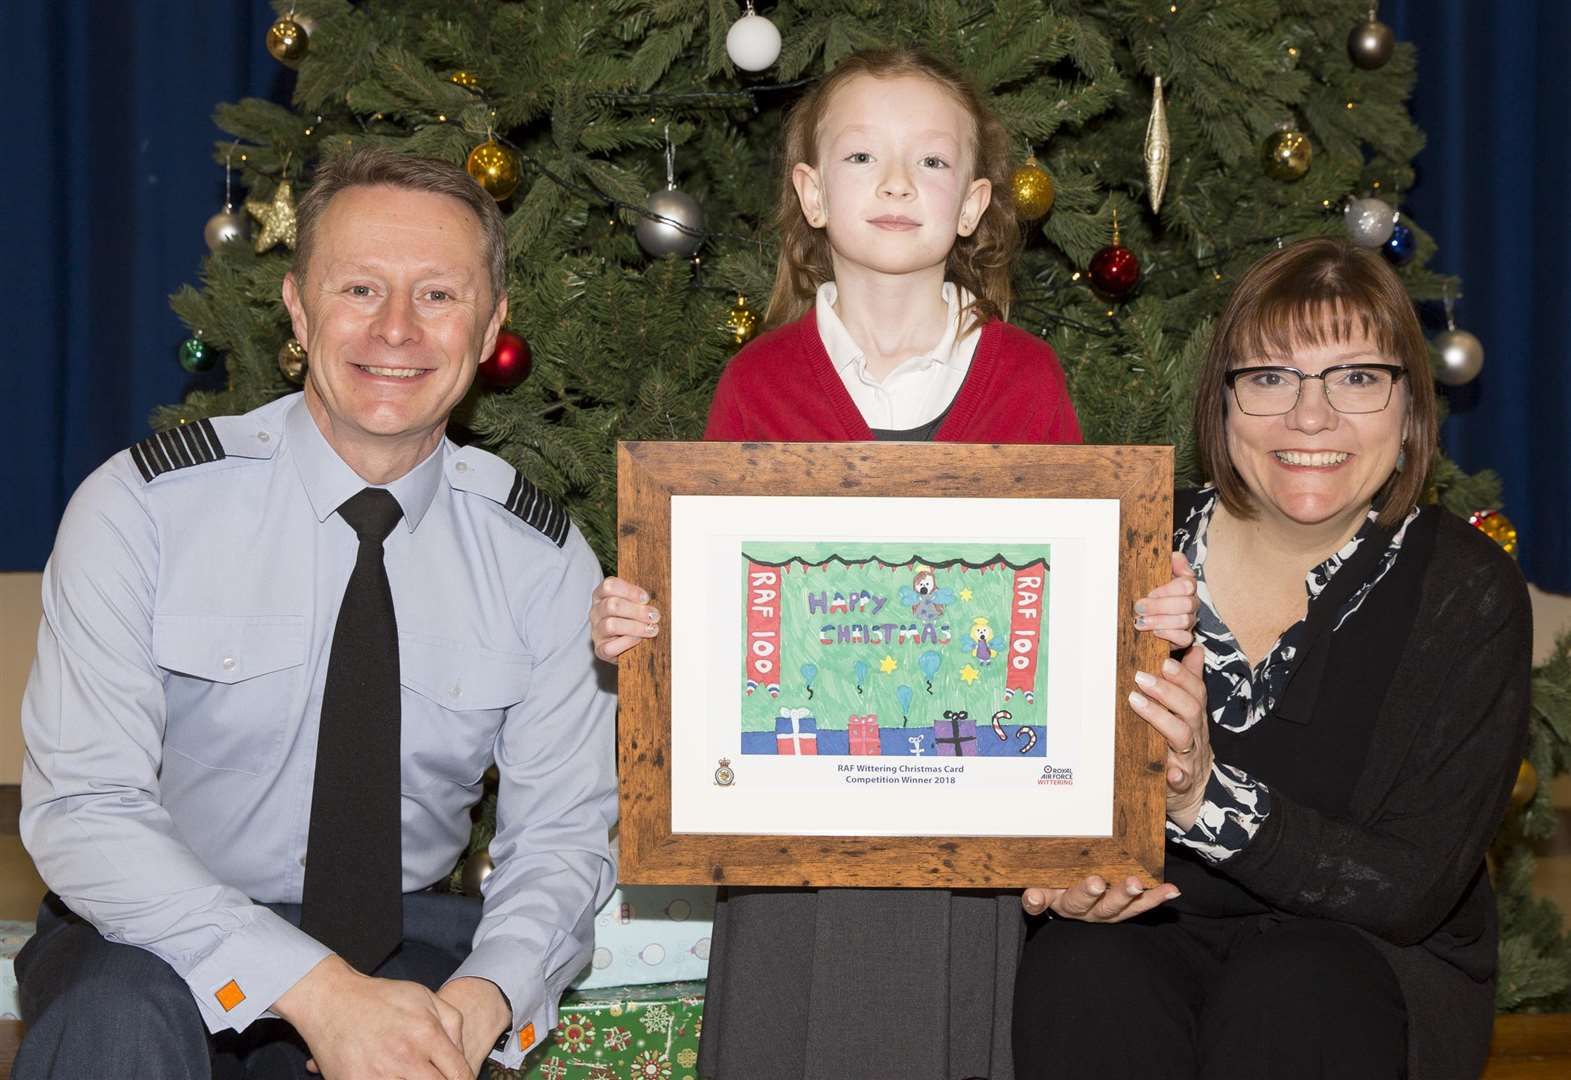 Year three pupil's design win's RAF Wittering Christmas card competition